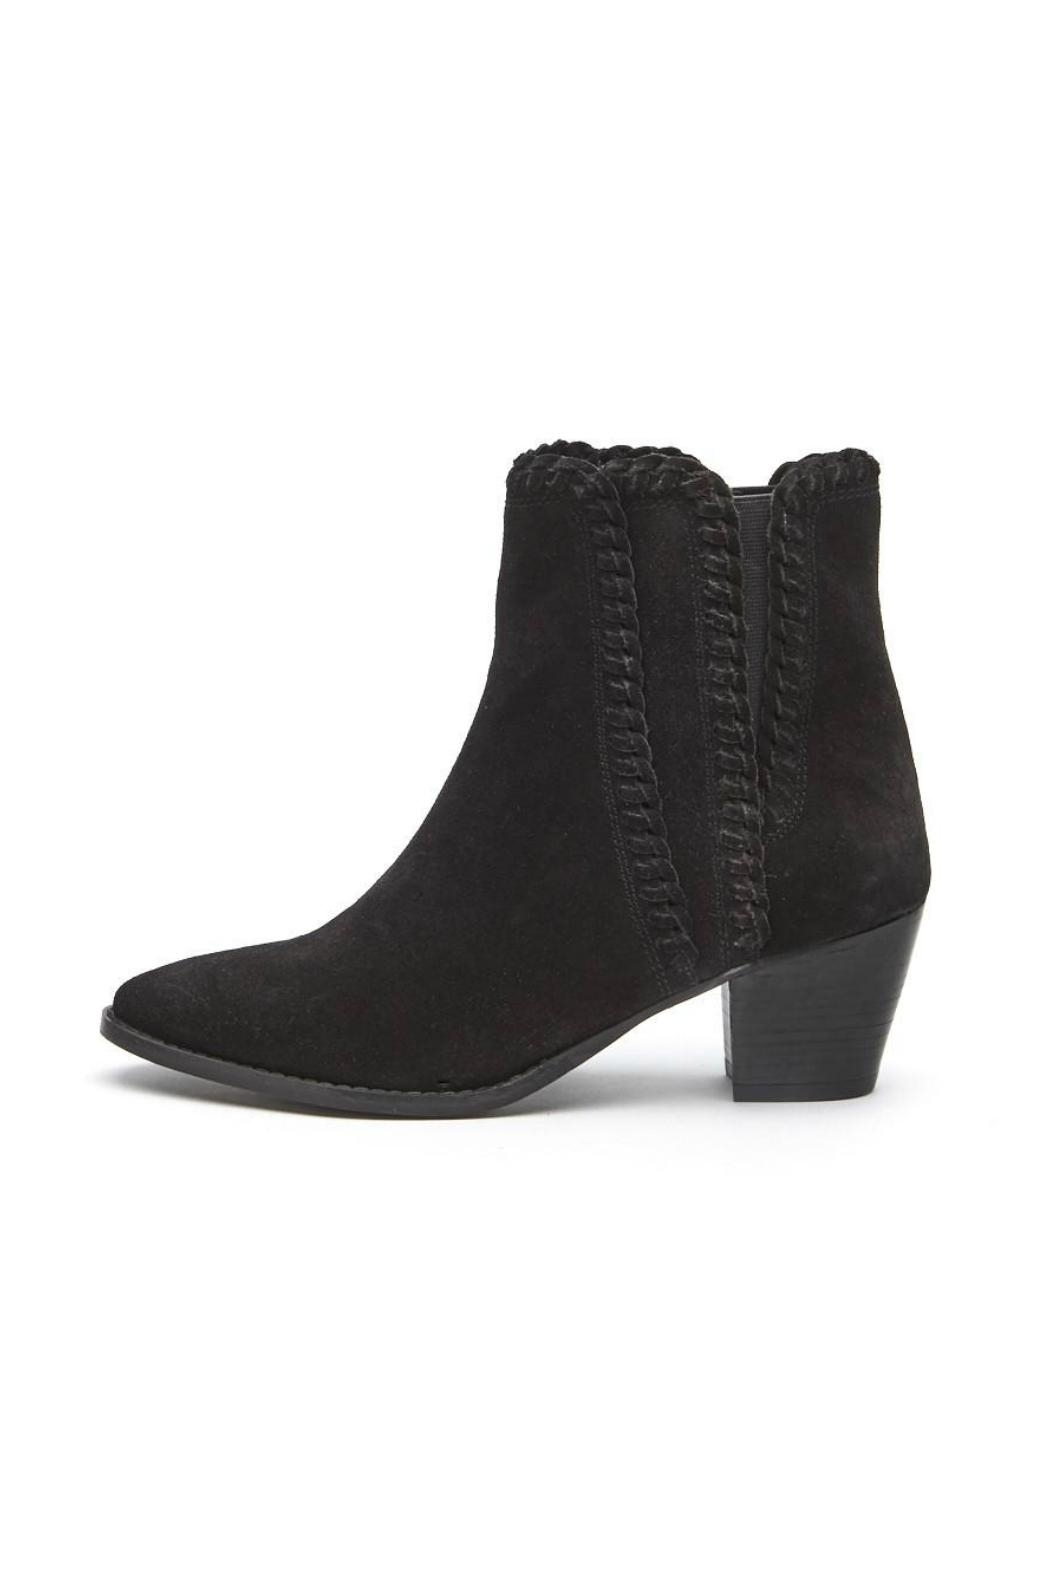 Matisse Footwear Willow Bootie w Stitching Detail - Front Cropped Image